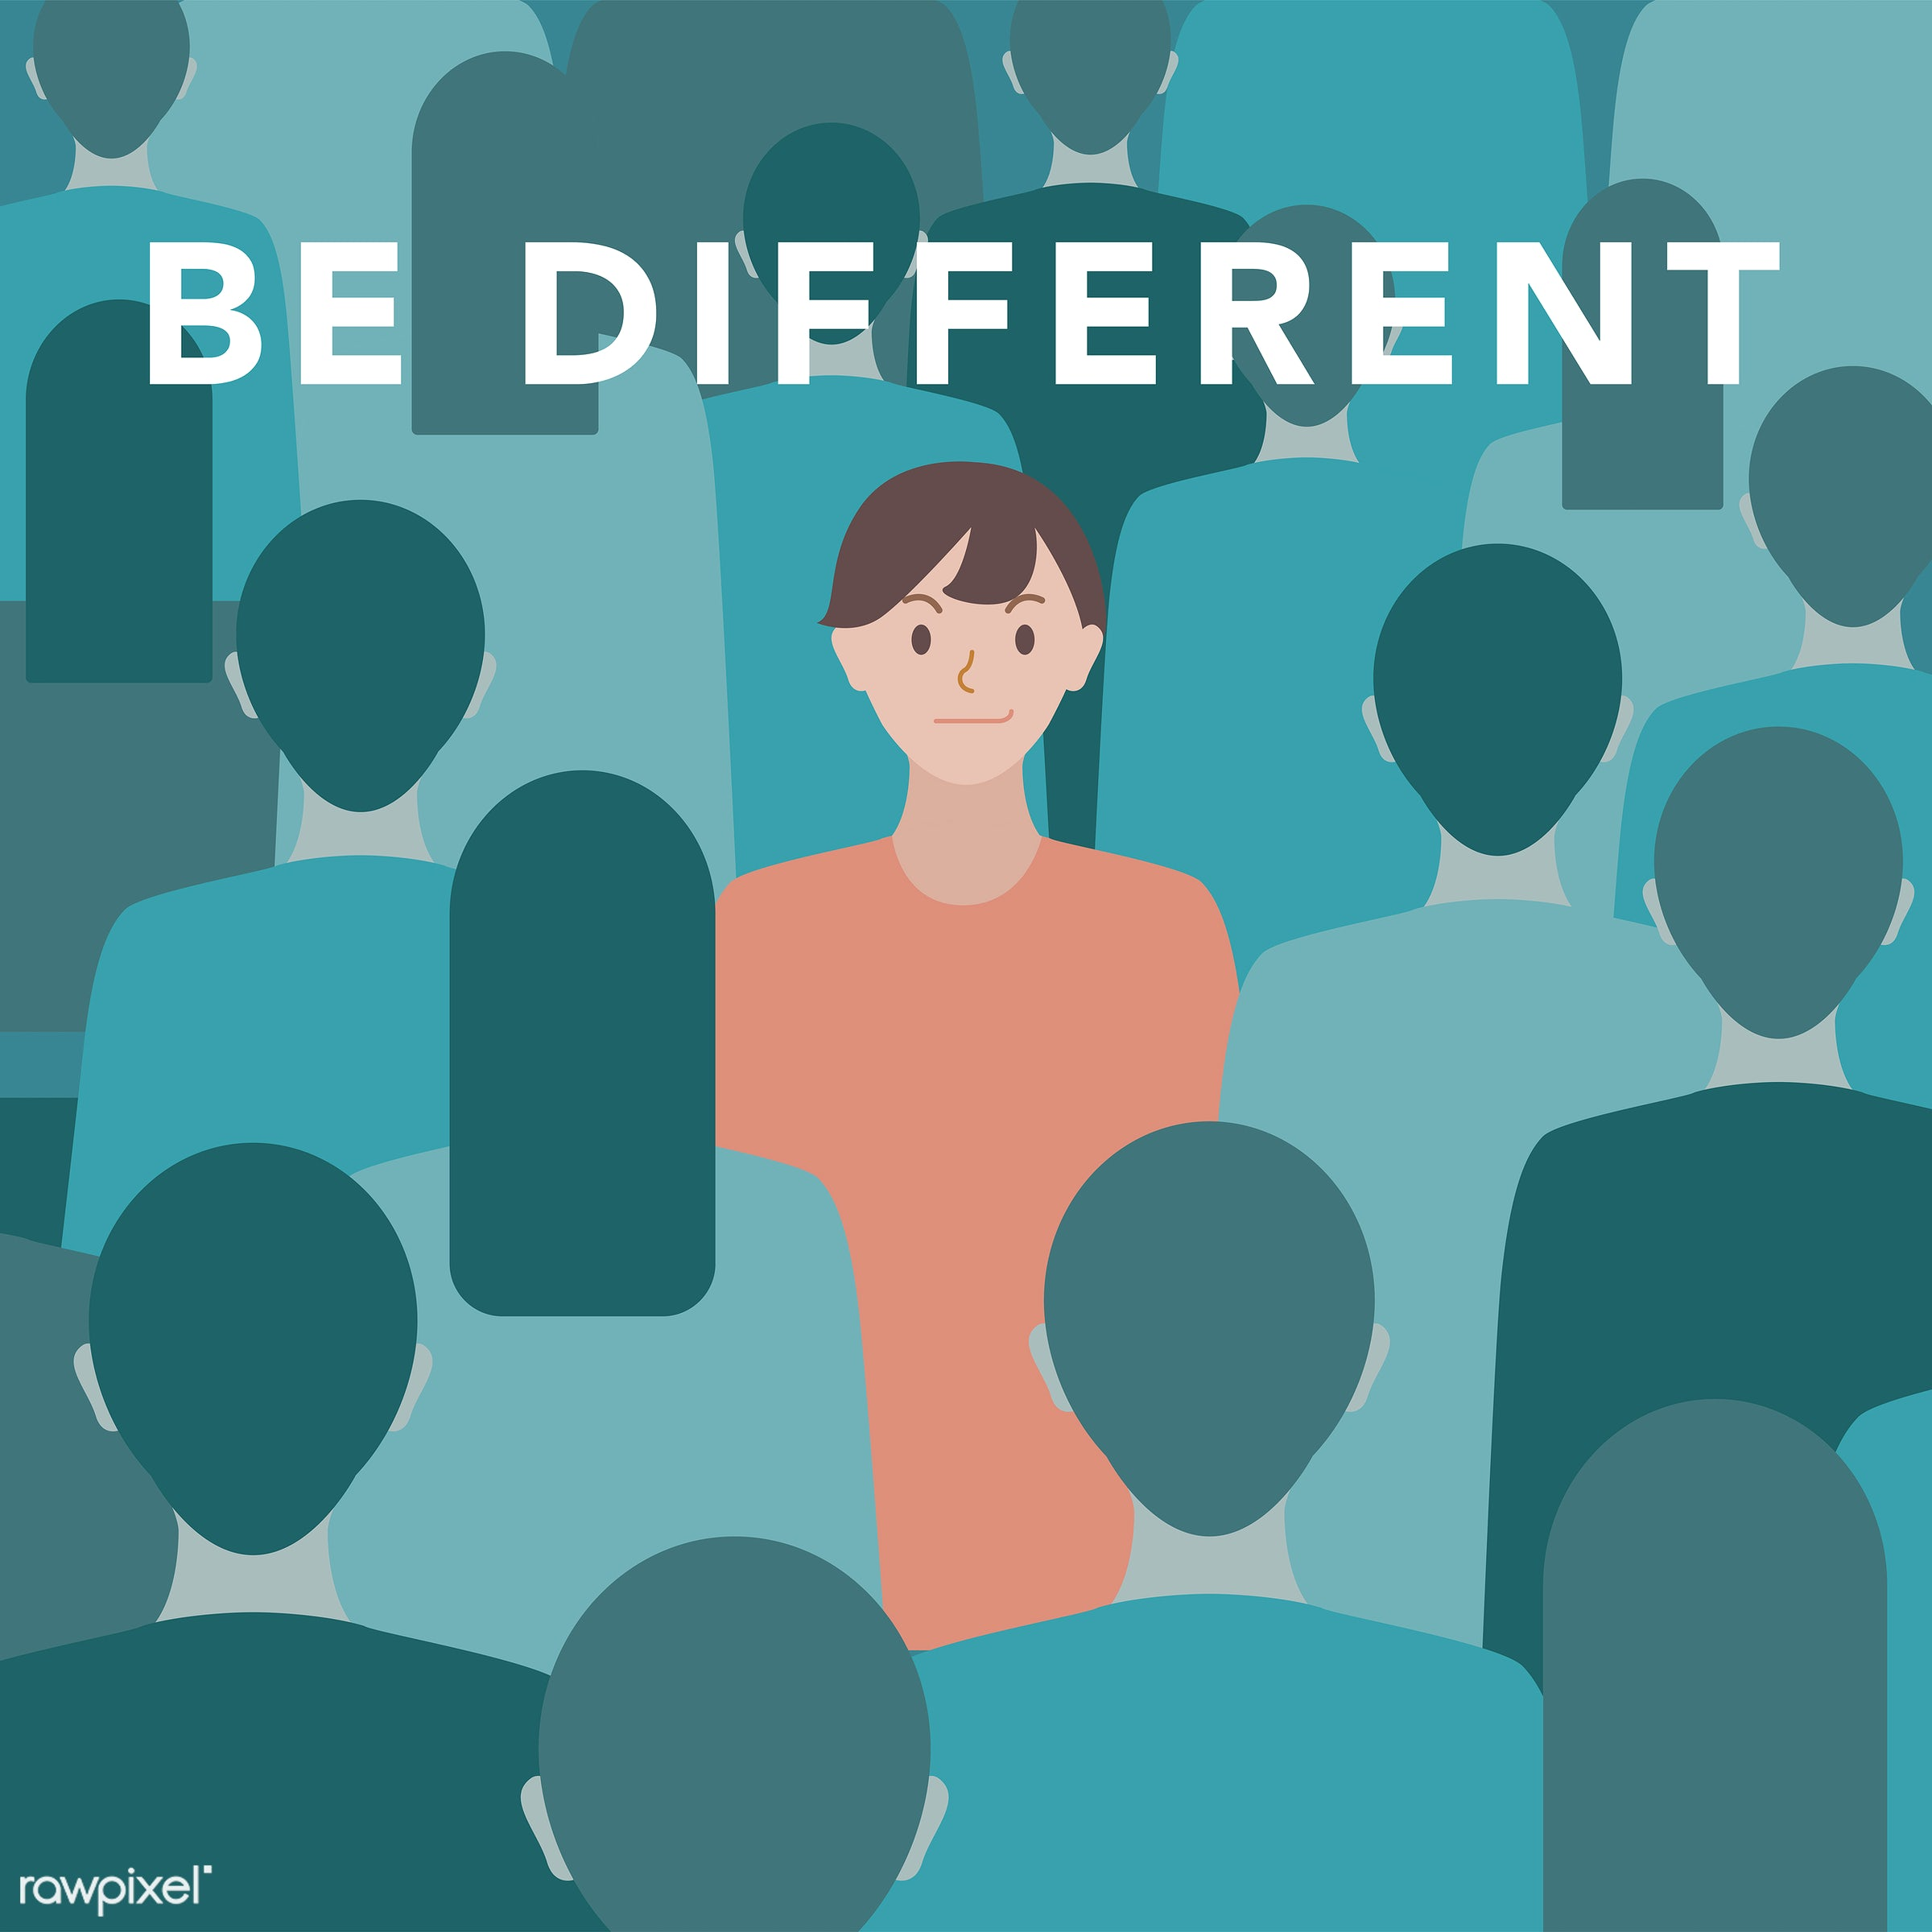 'Be different' illustration - vector, be different, different, human, journey, man, people, quote, self-esteem, green, crowd...